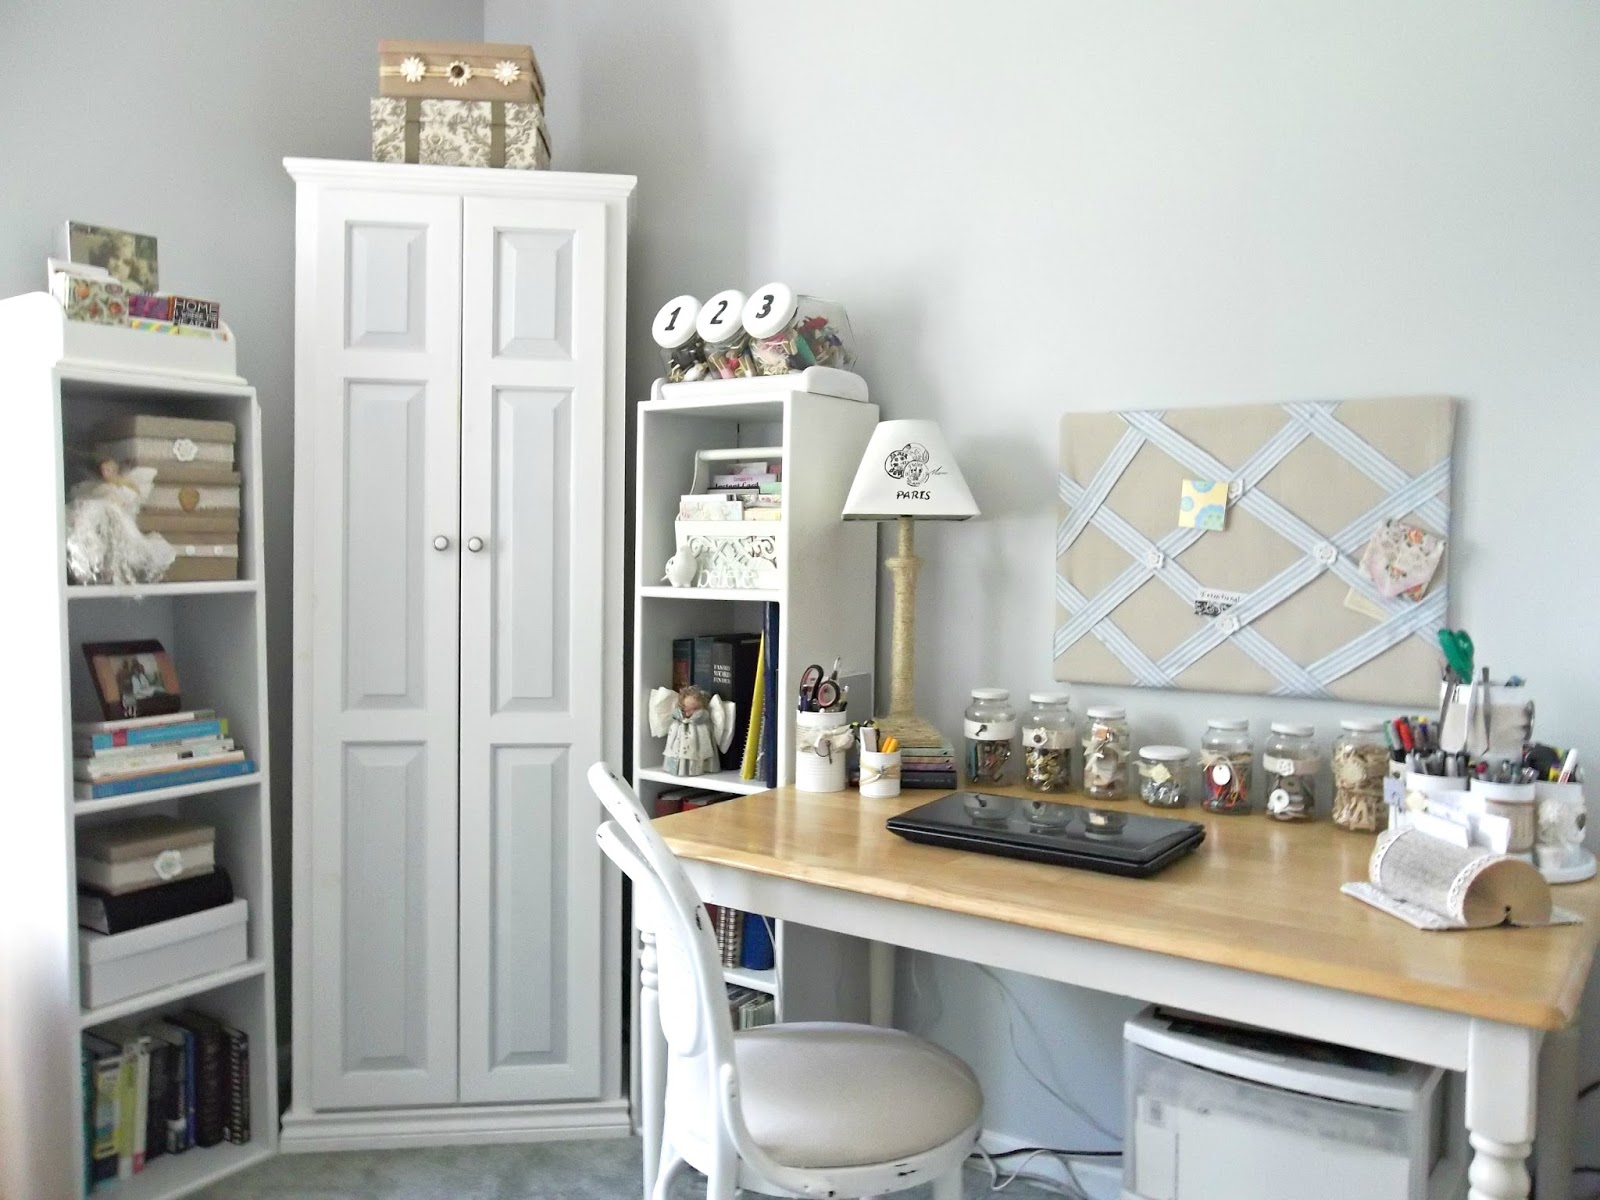 Craft rooms on a budget - Organizing Your Craft Room With Recycled Thrifted Or Multipurpose Items On A Budget